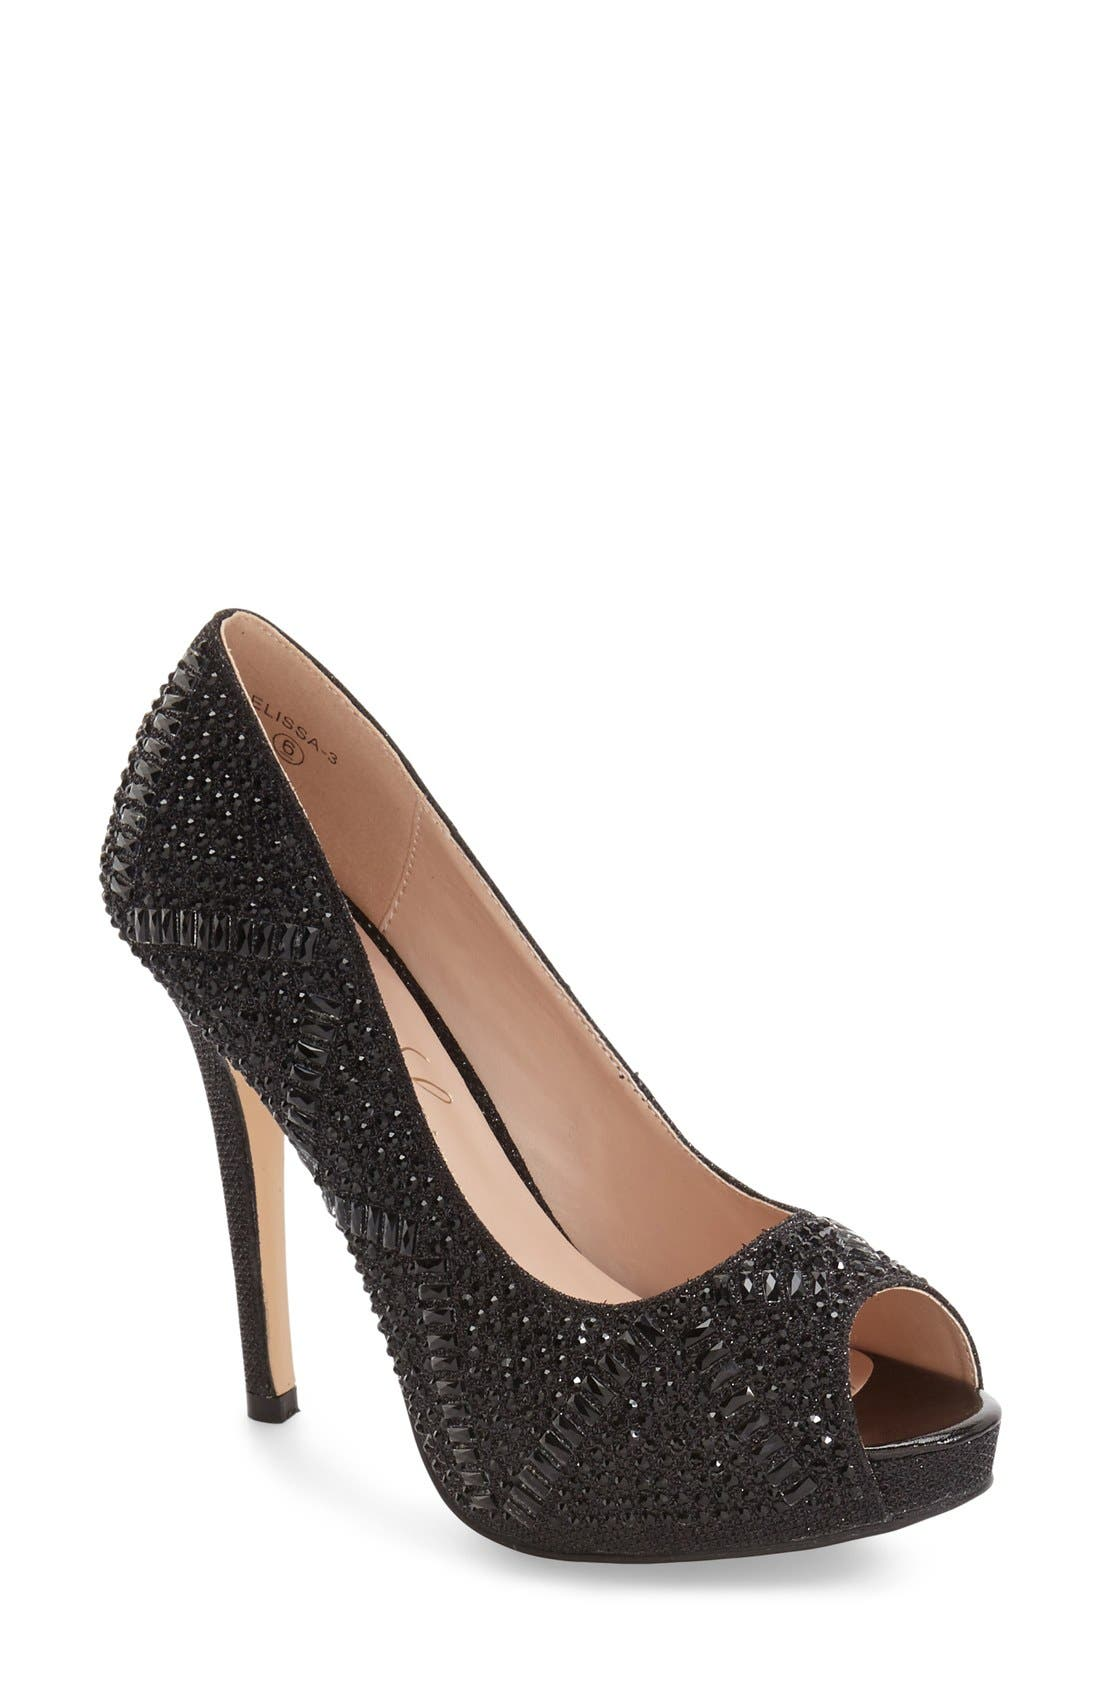 Elissa - 3 Peep Toe Pump,                         Main,                         color, Black